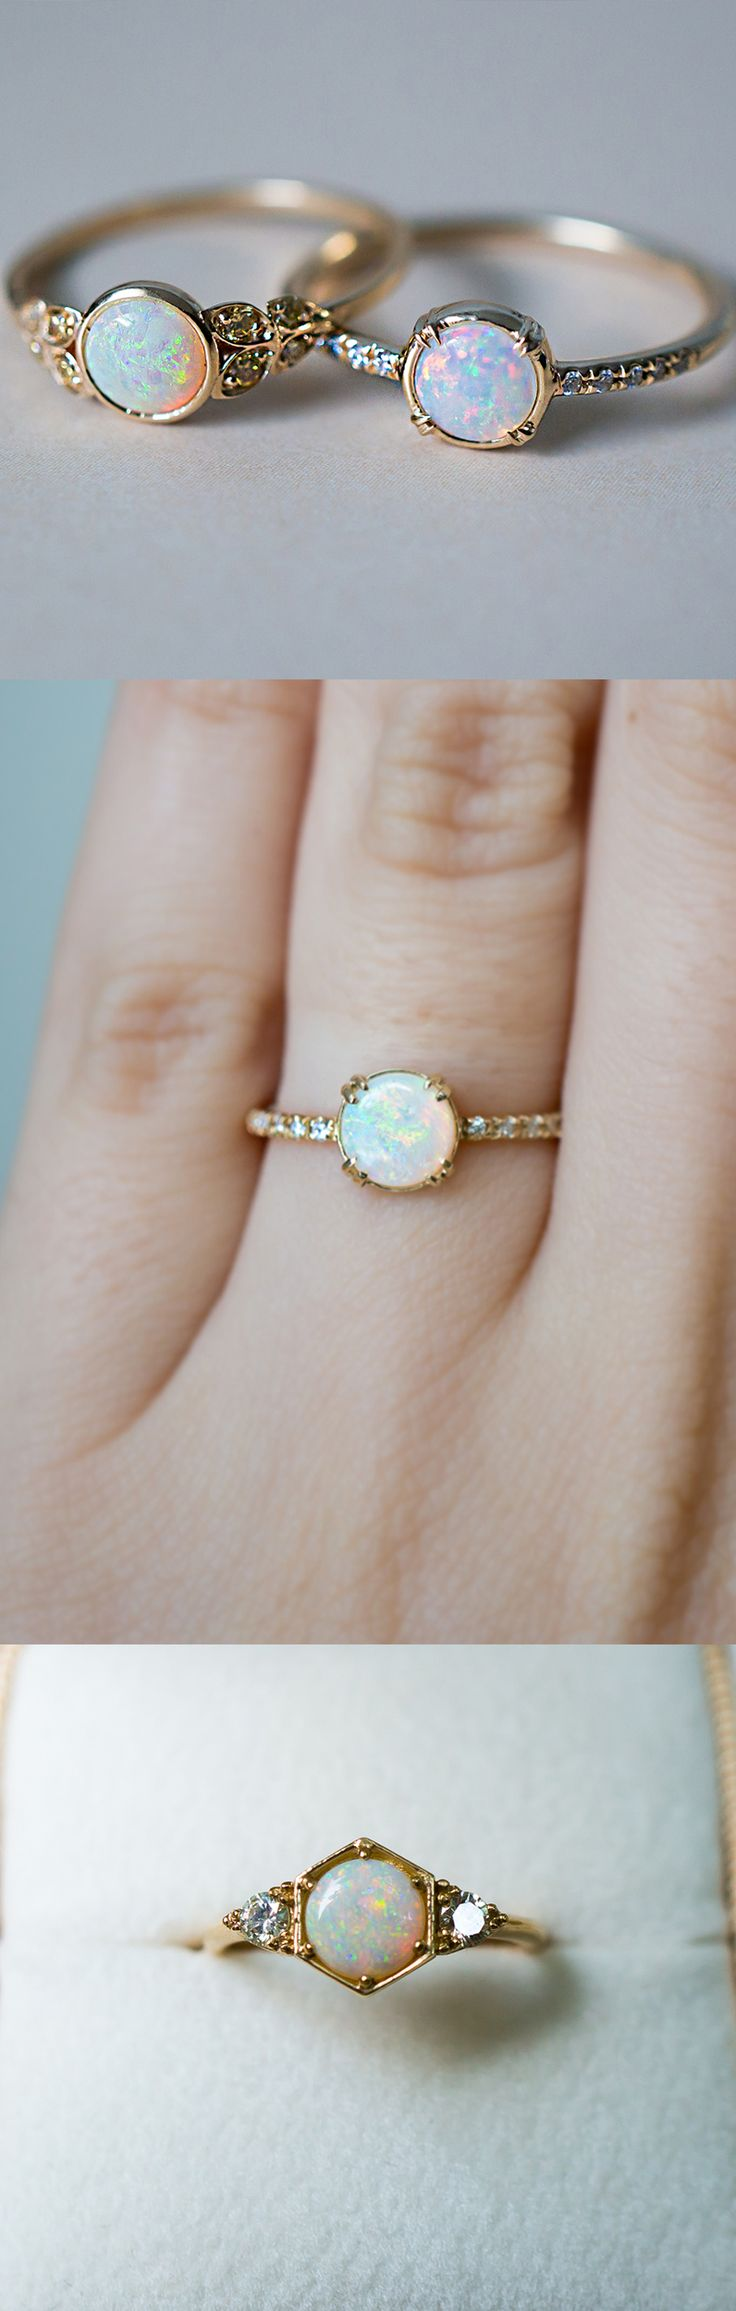 opal engagement rings opal wedding rings One of a kind Opal engagement rings inspired by vintage style Handcrafted by S